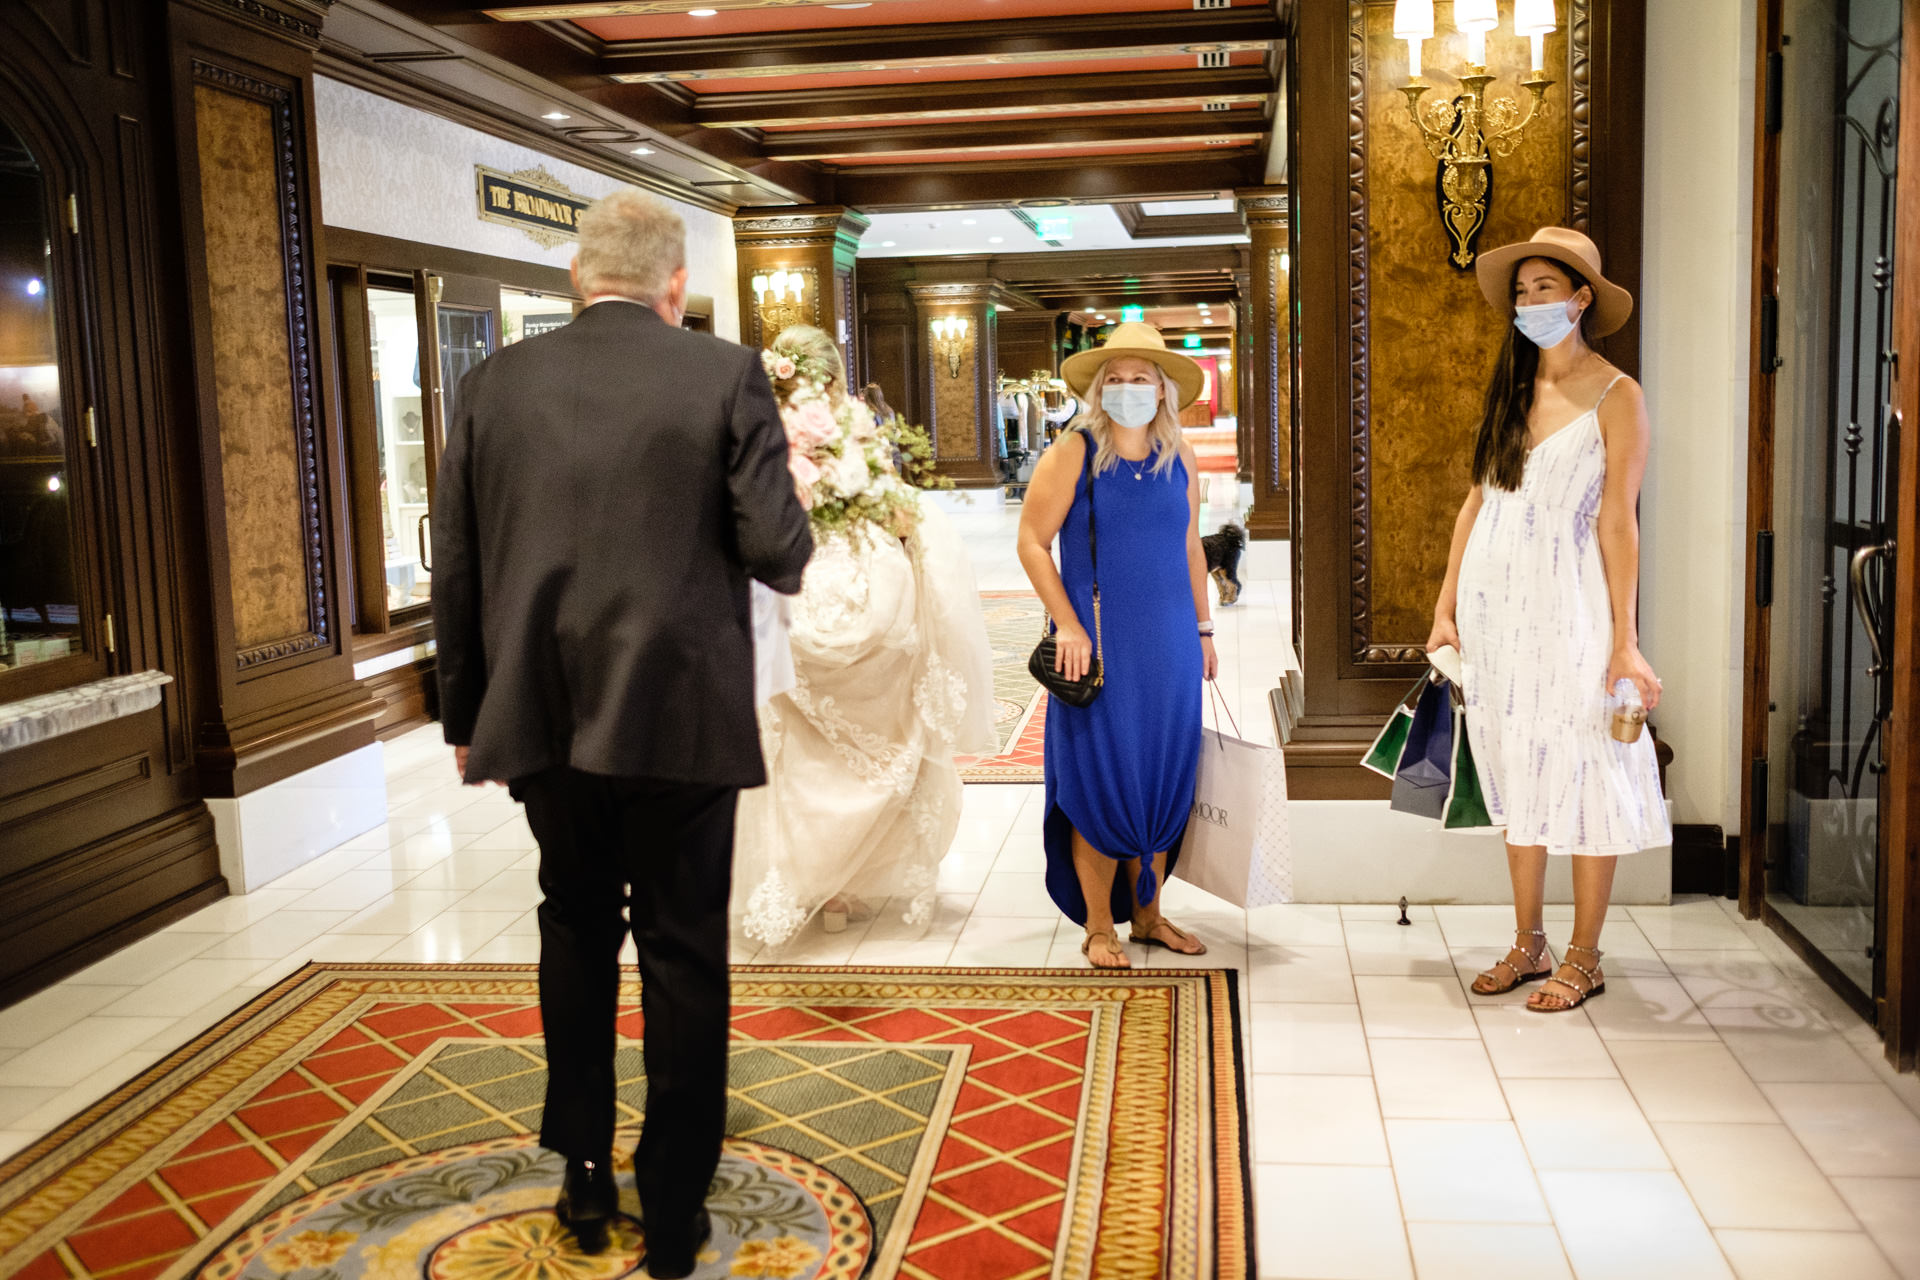 Colorado Springs Broadmoor Hotel Wedding Picture | on their way to their wedding ceremony through the lobby